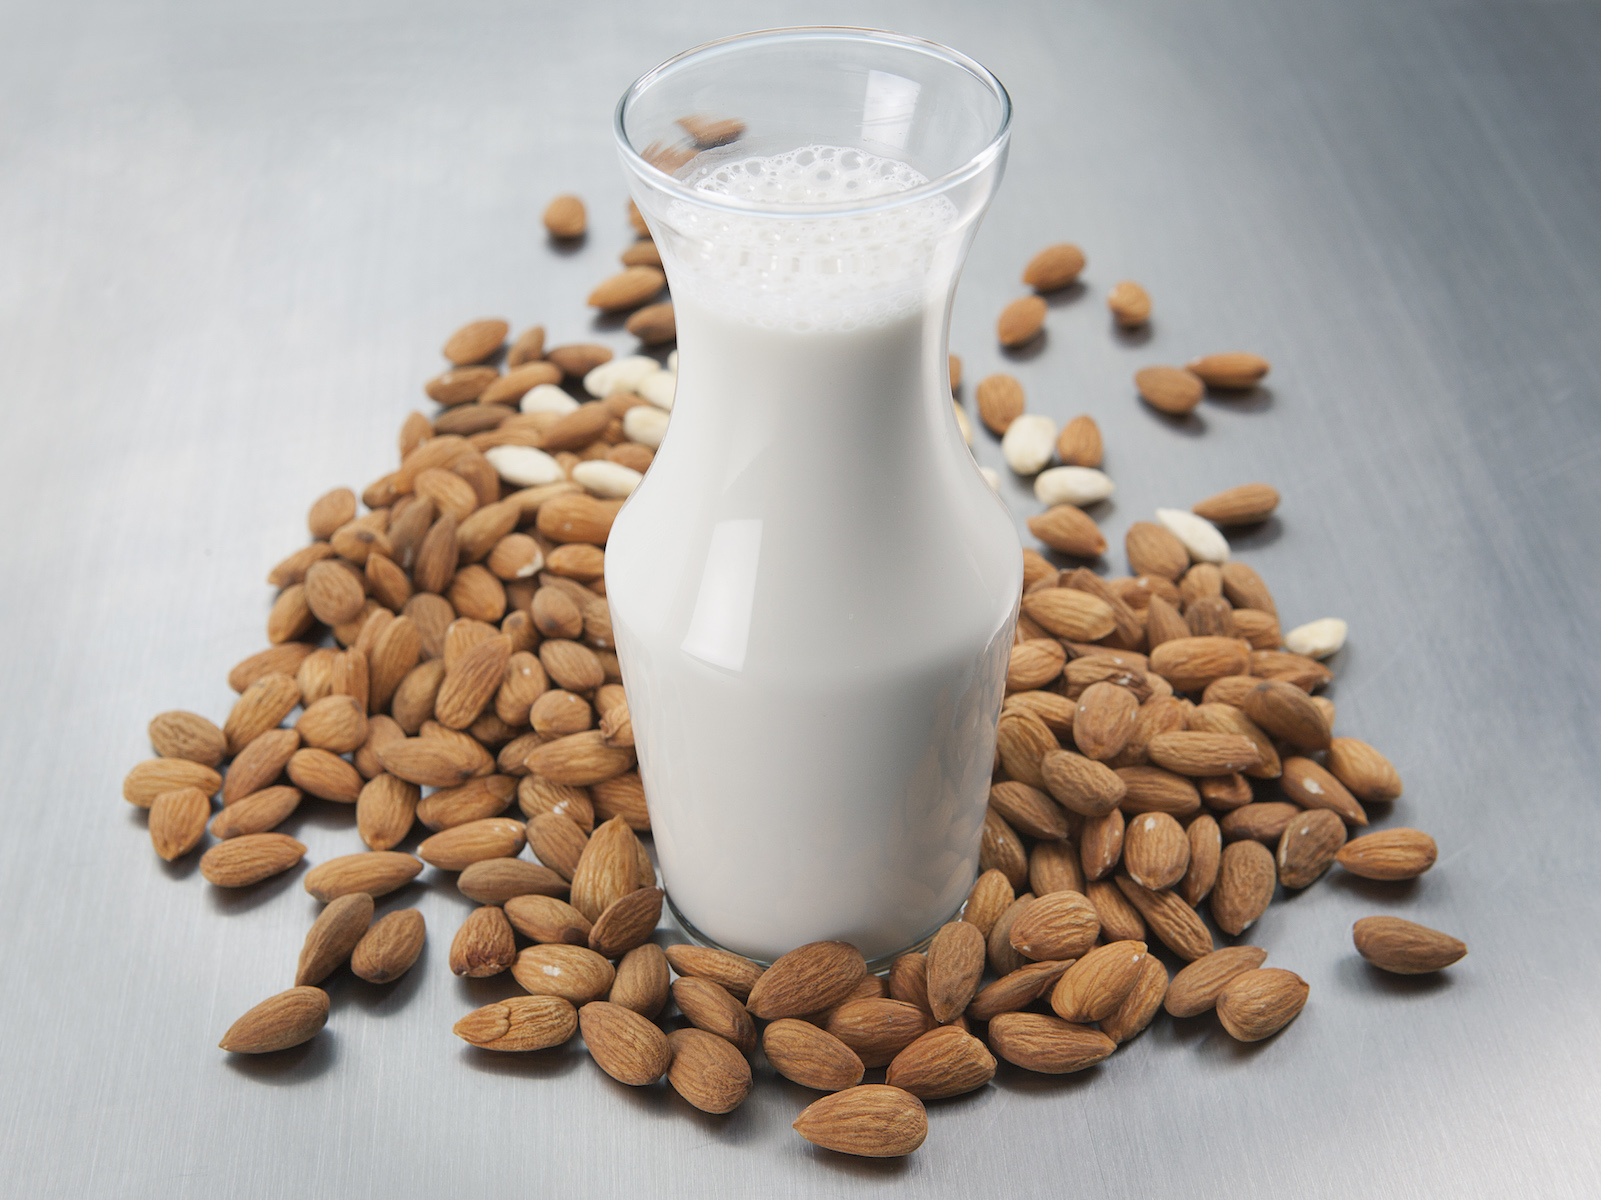 Whole Foods Tests 'Made Fresh' Almondmilk Machine